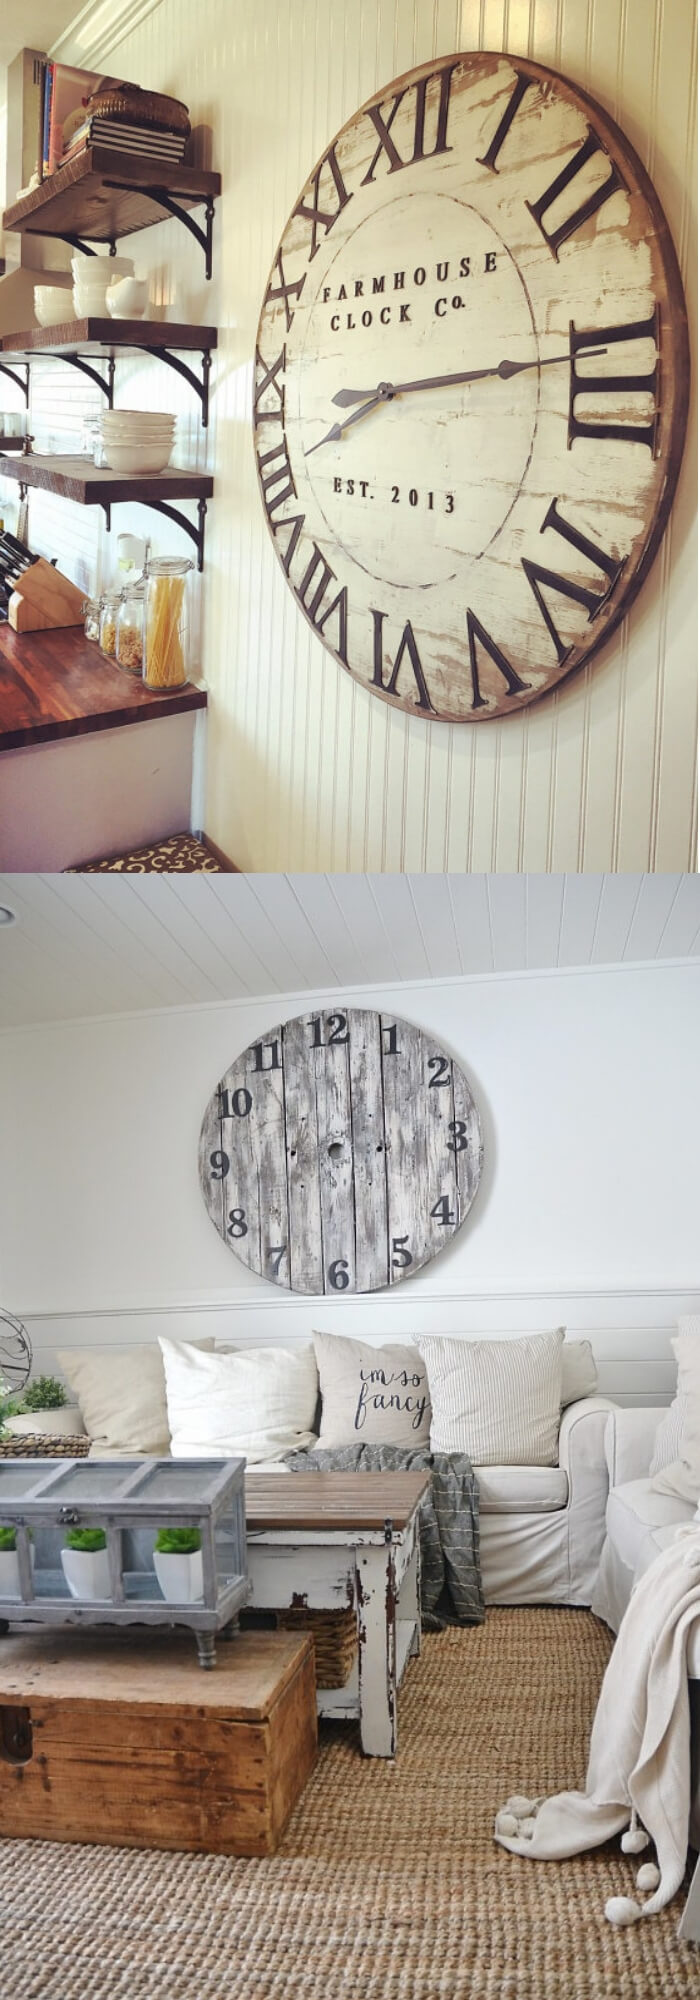 Old clock | Stunning Farmhouse Dining Room Design & Decor Ideas